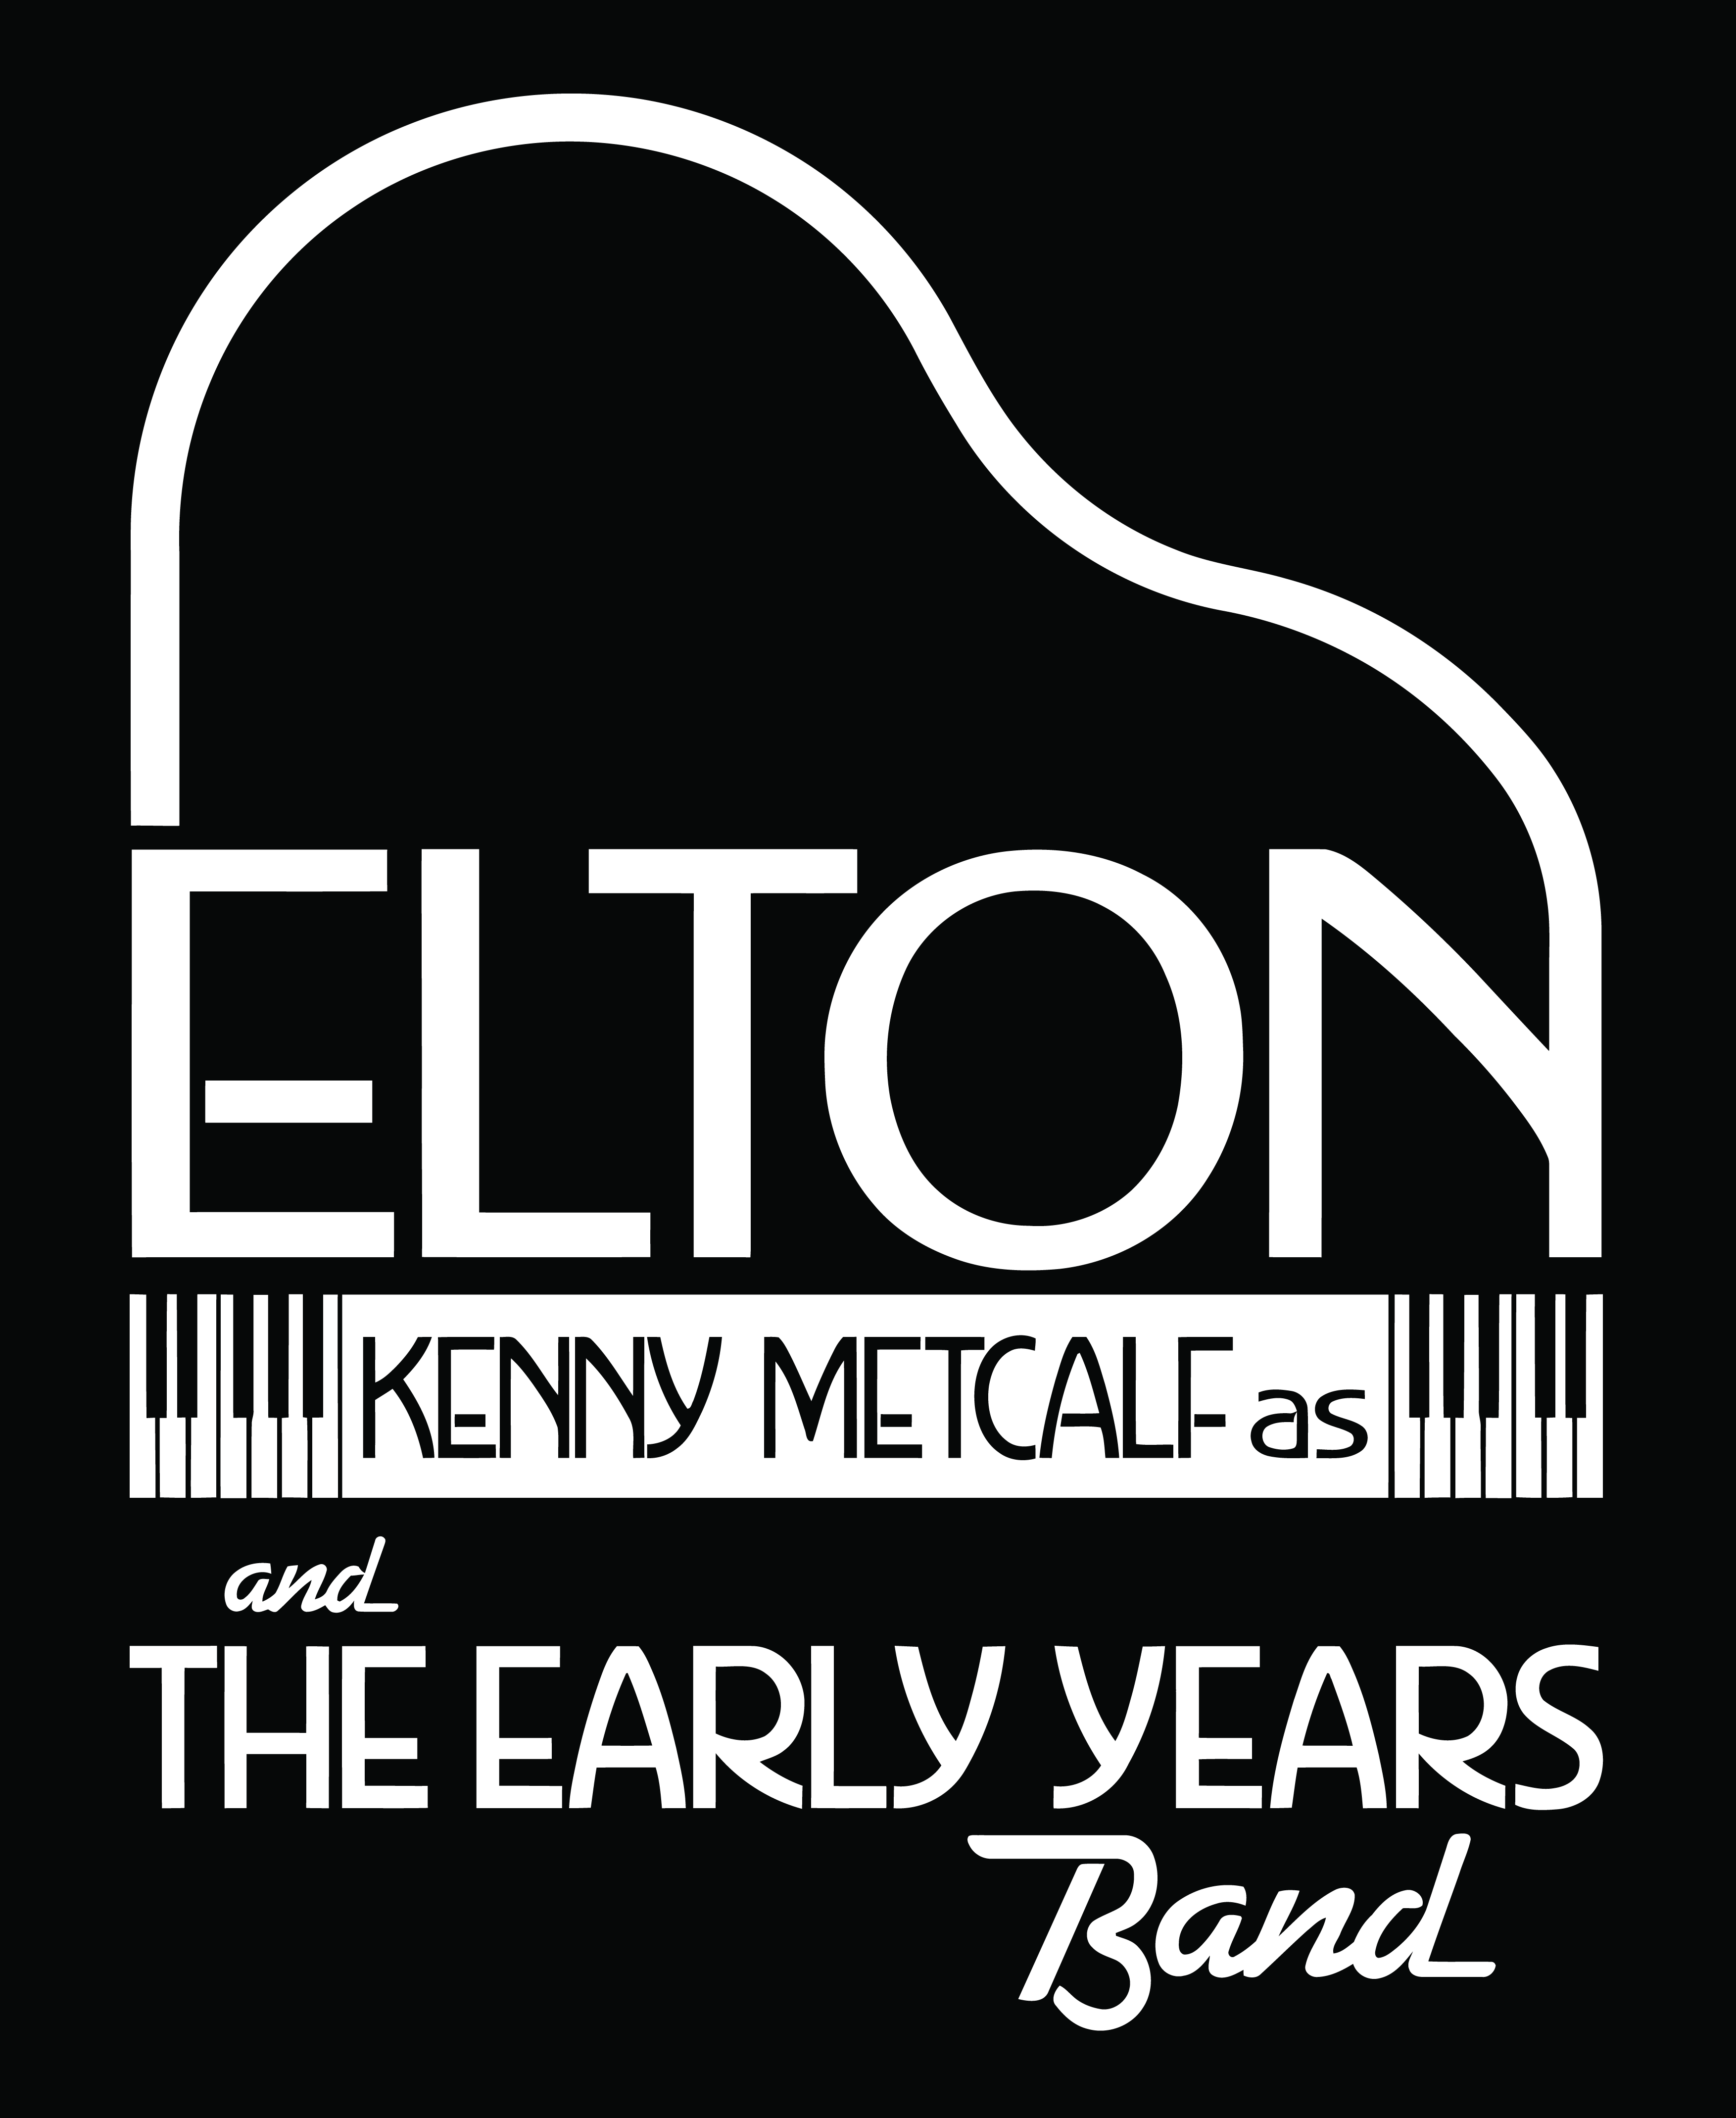 Kenny Metcalf as Elton John